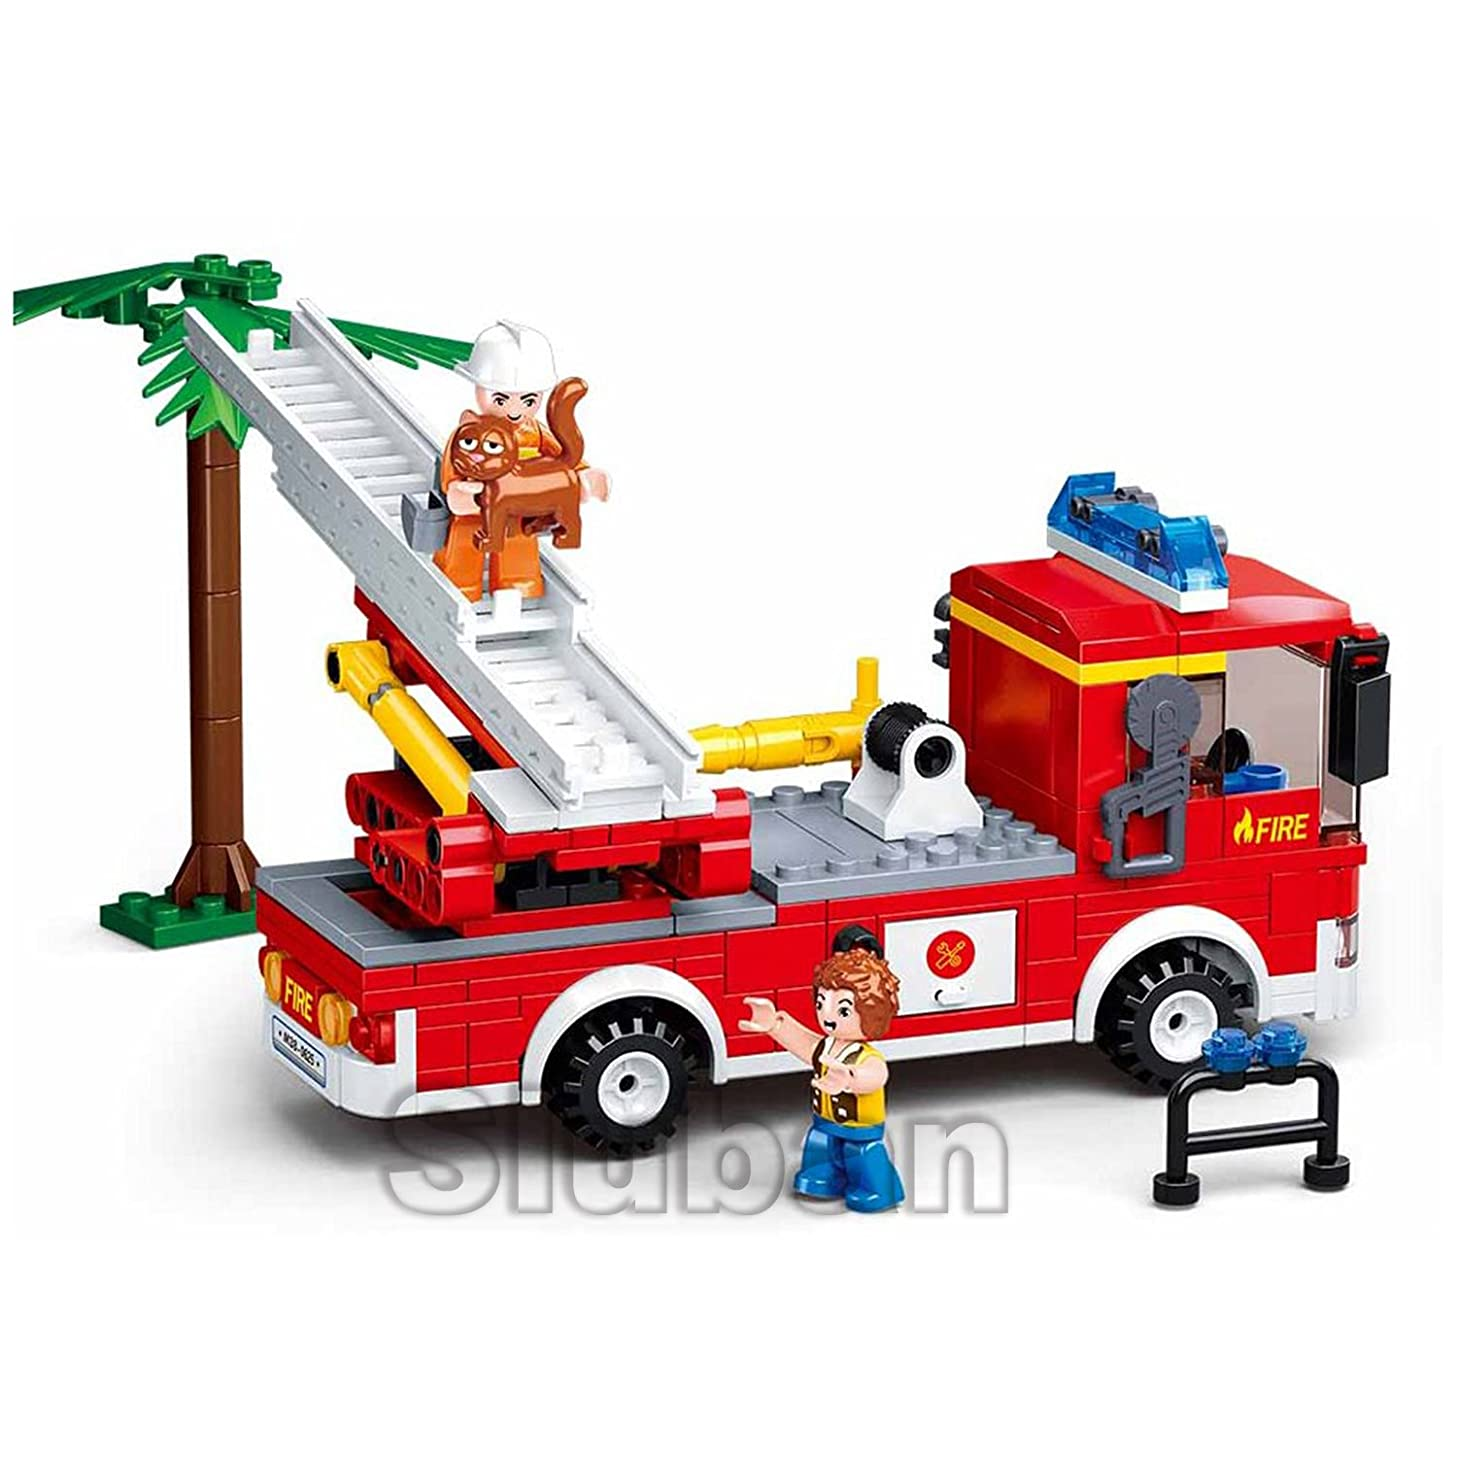 Sluban Fire Truck with Aerial Ladder - 269 Pieces in Original English Box 100% Compatible. Construction Building Brick Educational Toy (M38-B0625)